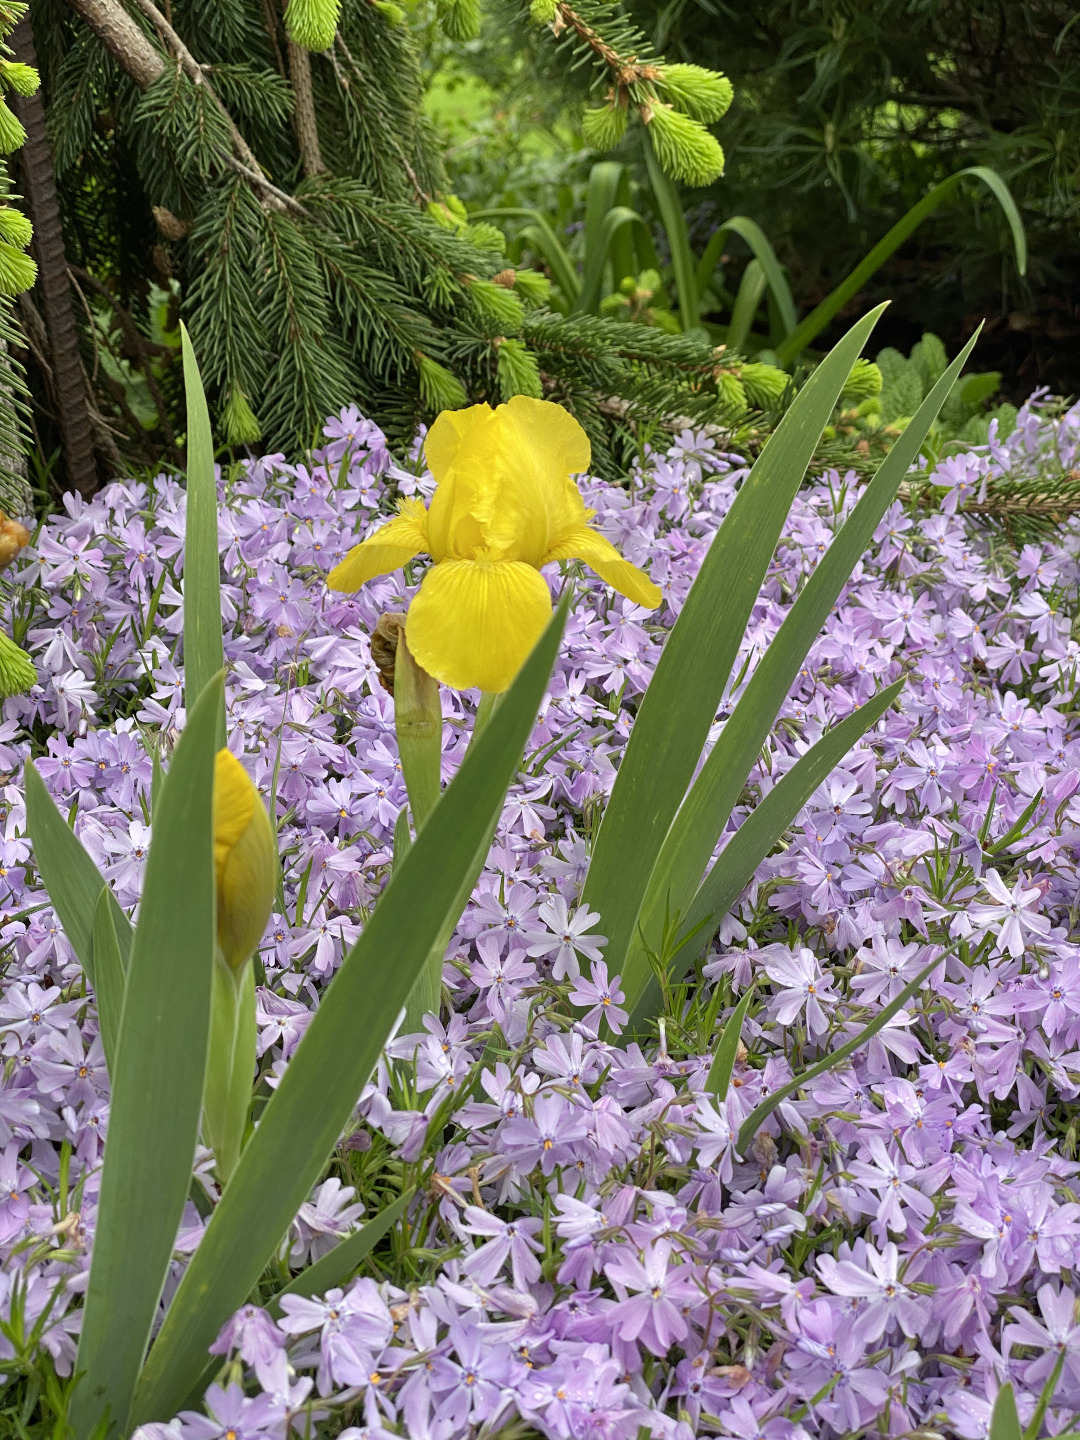 A yellow iris growing in a mass of lavender phlox